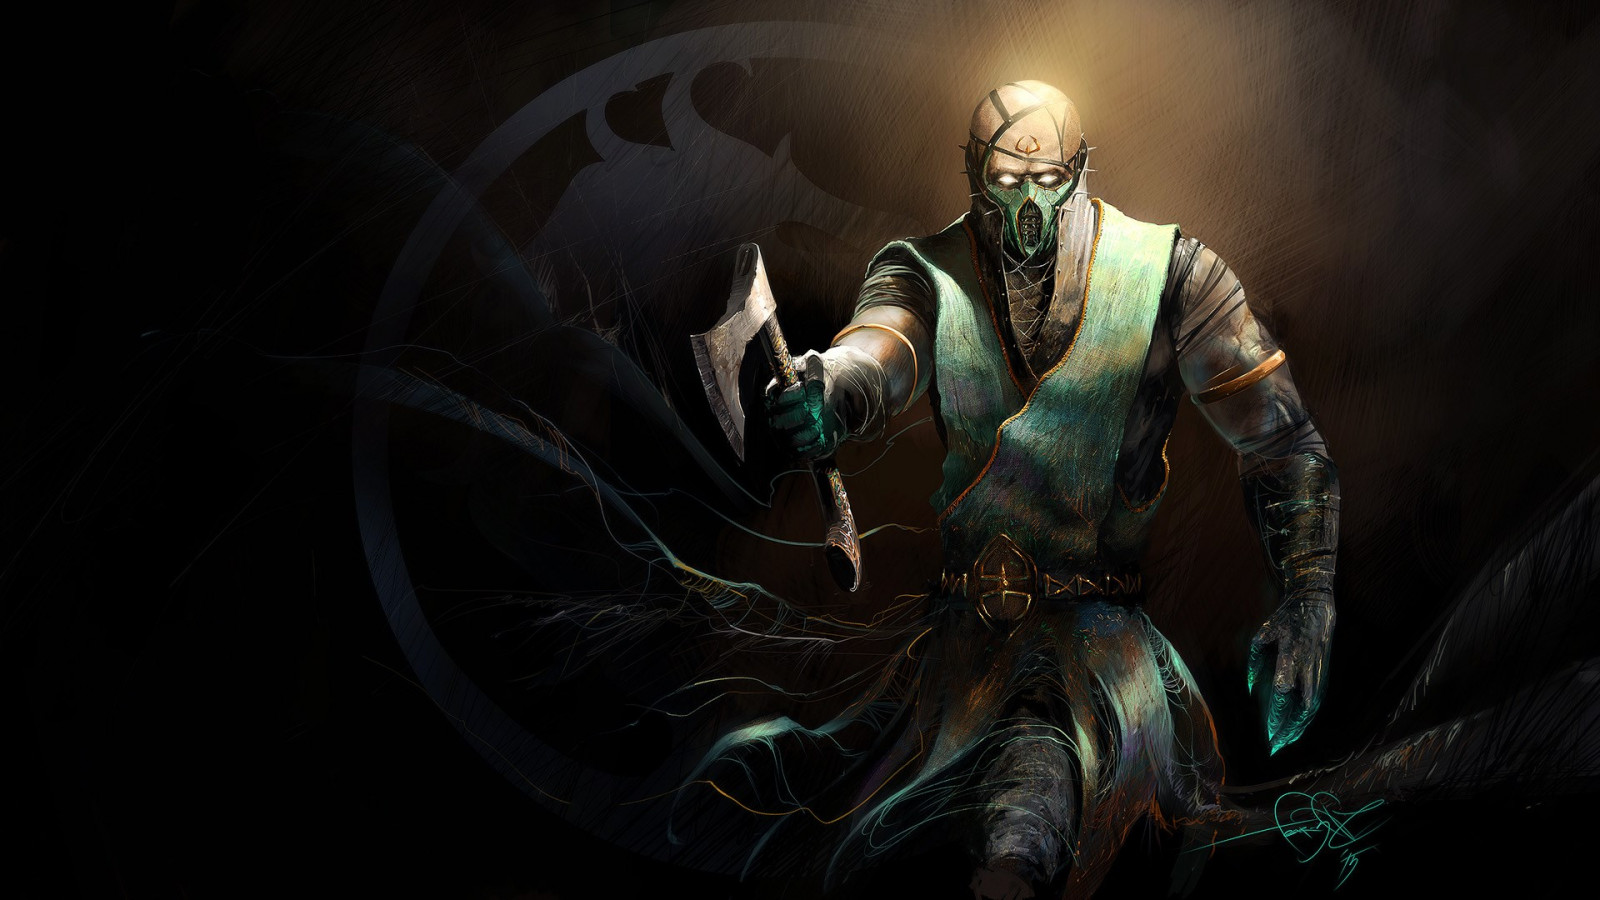 Chameleon from Mortal Kombat video game wallpaper 1600x900